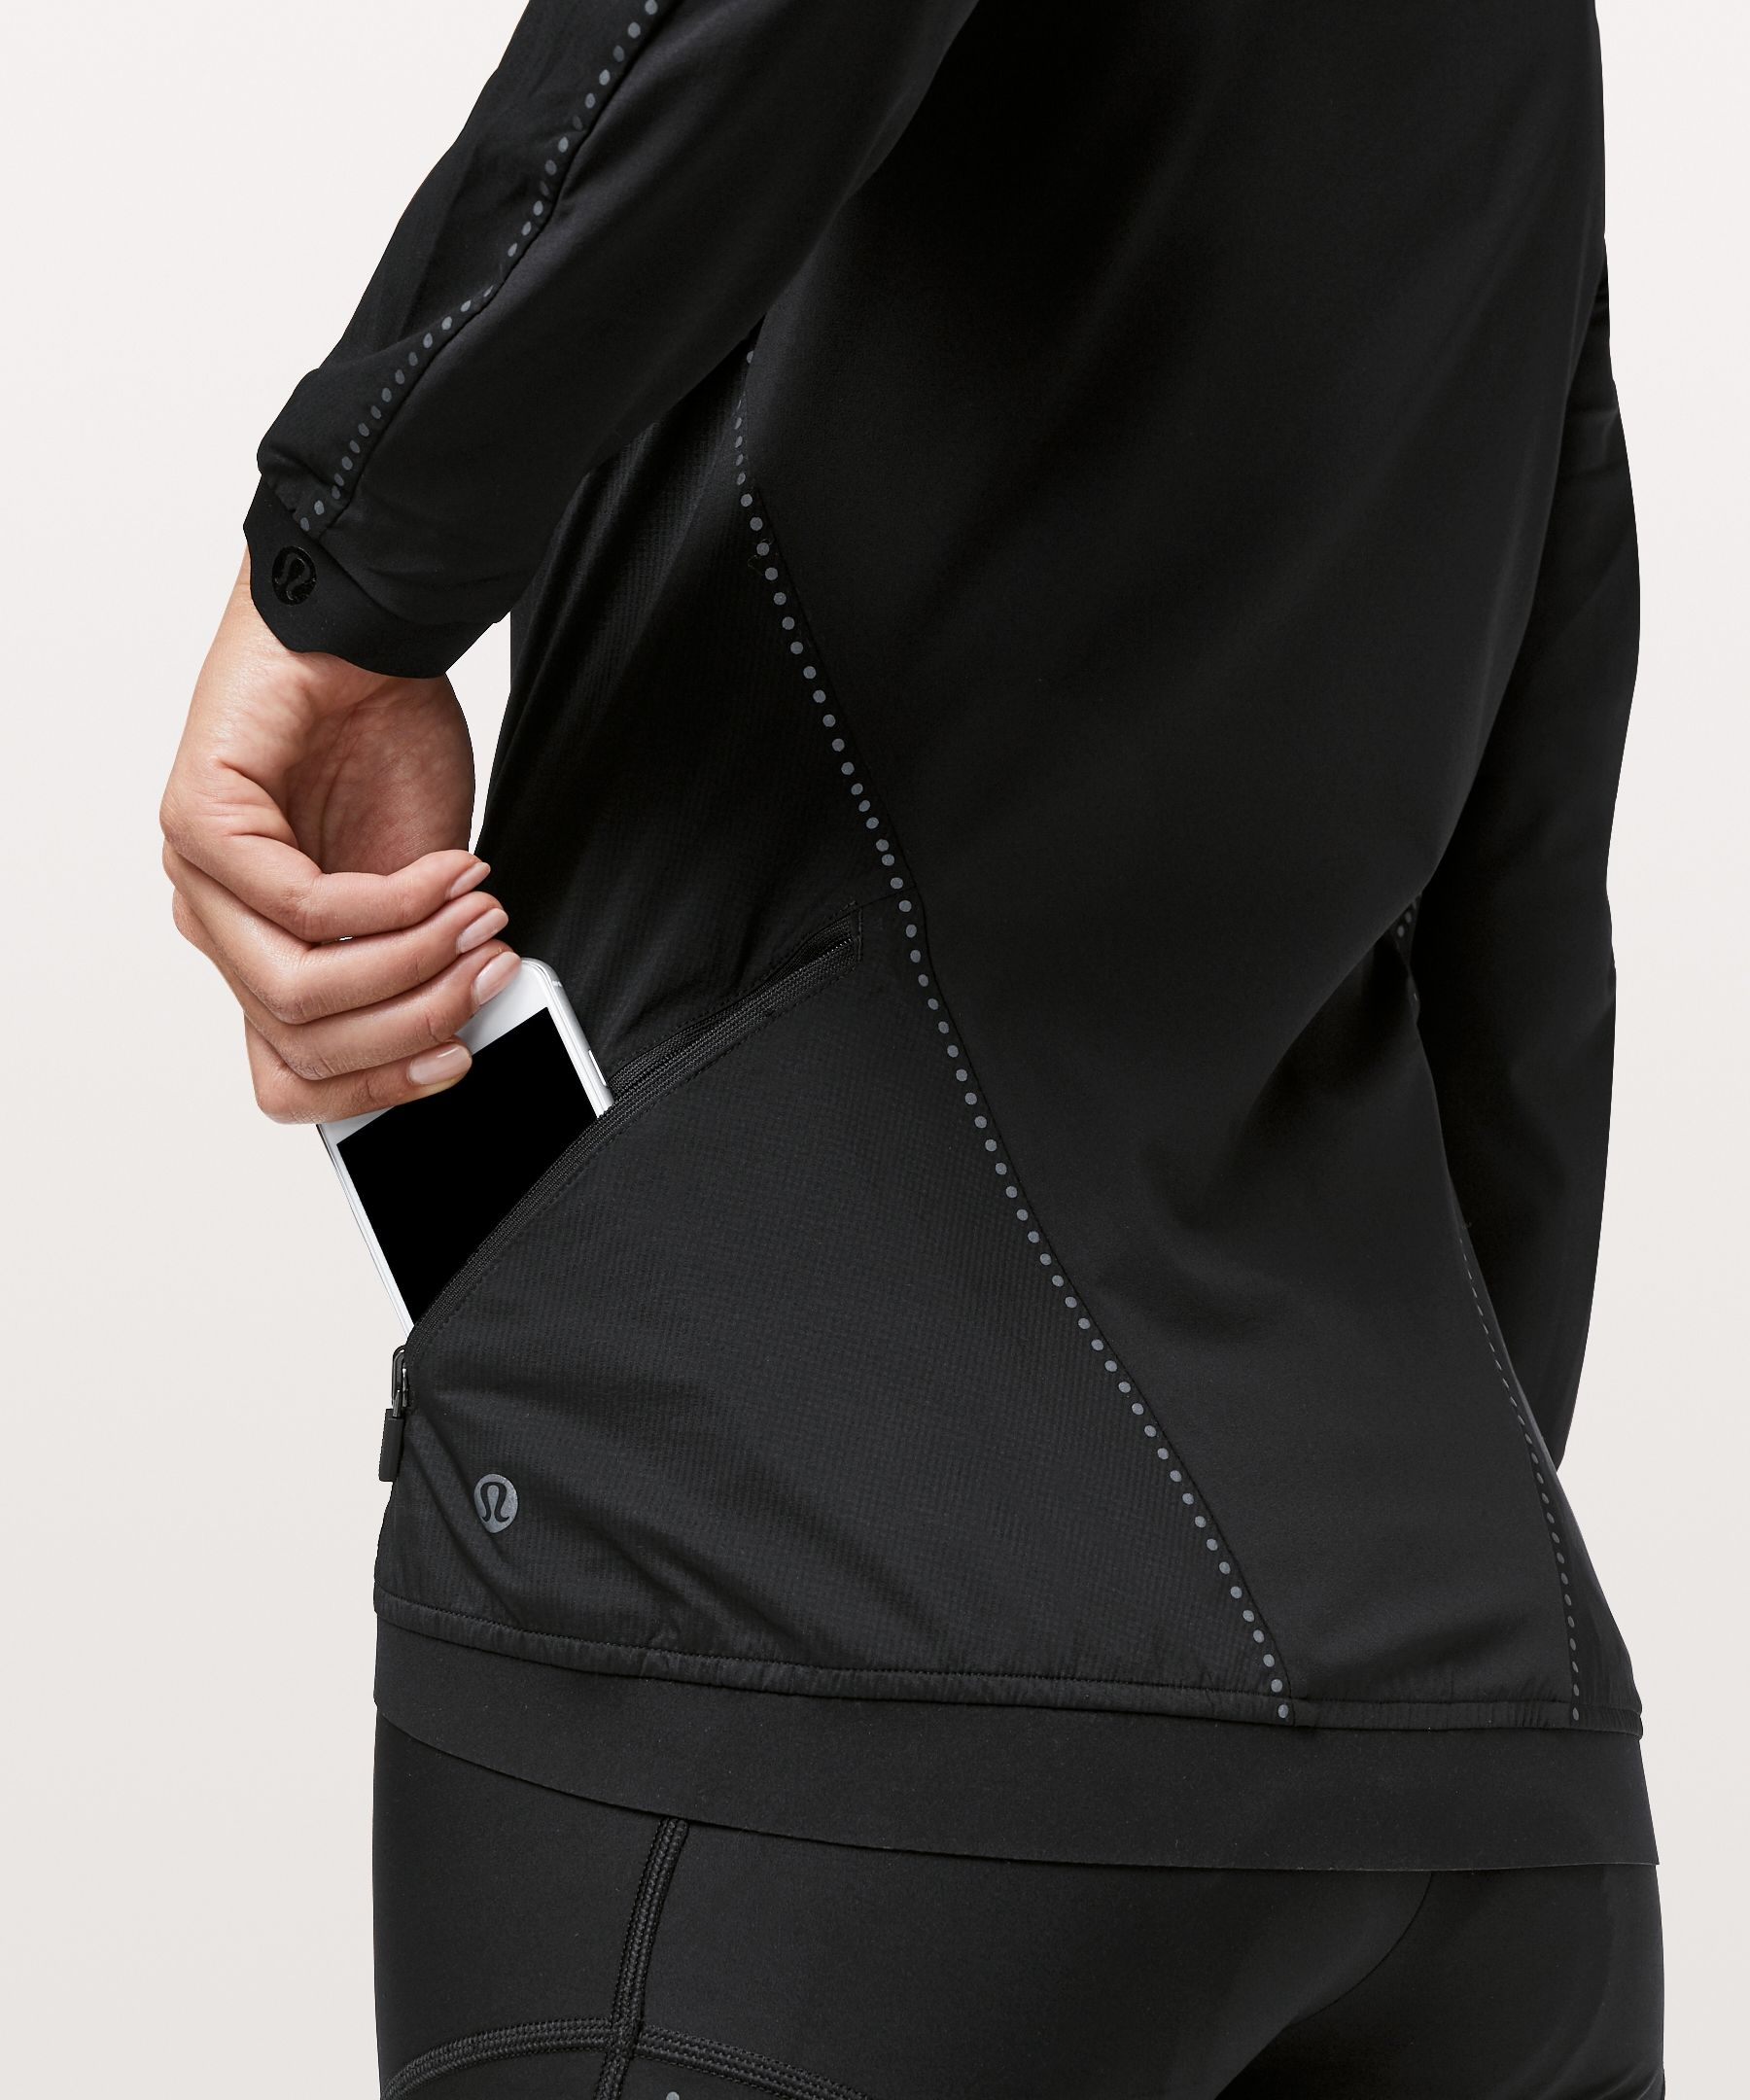 Lululemon Women S City To Summit Cycling Jacket Black Size Xl Jackets For Women Cycling Tops Jackets